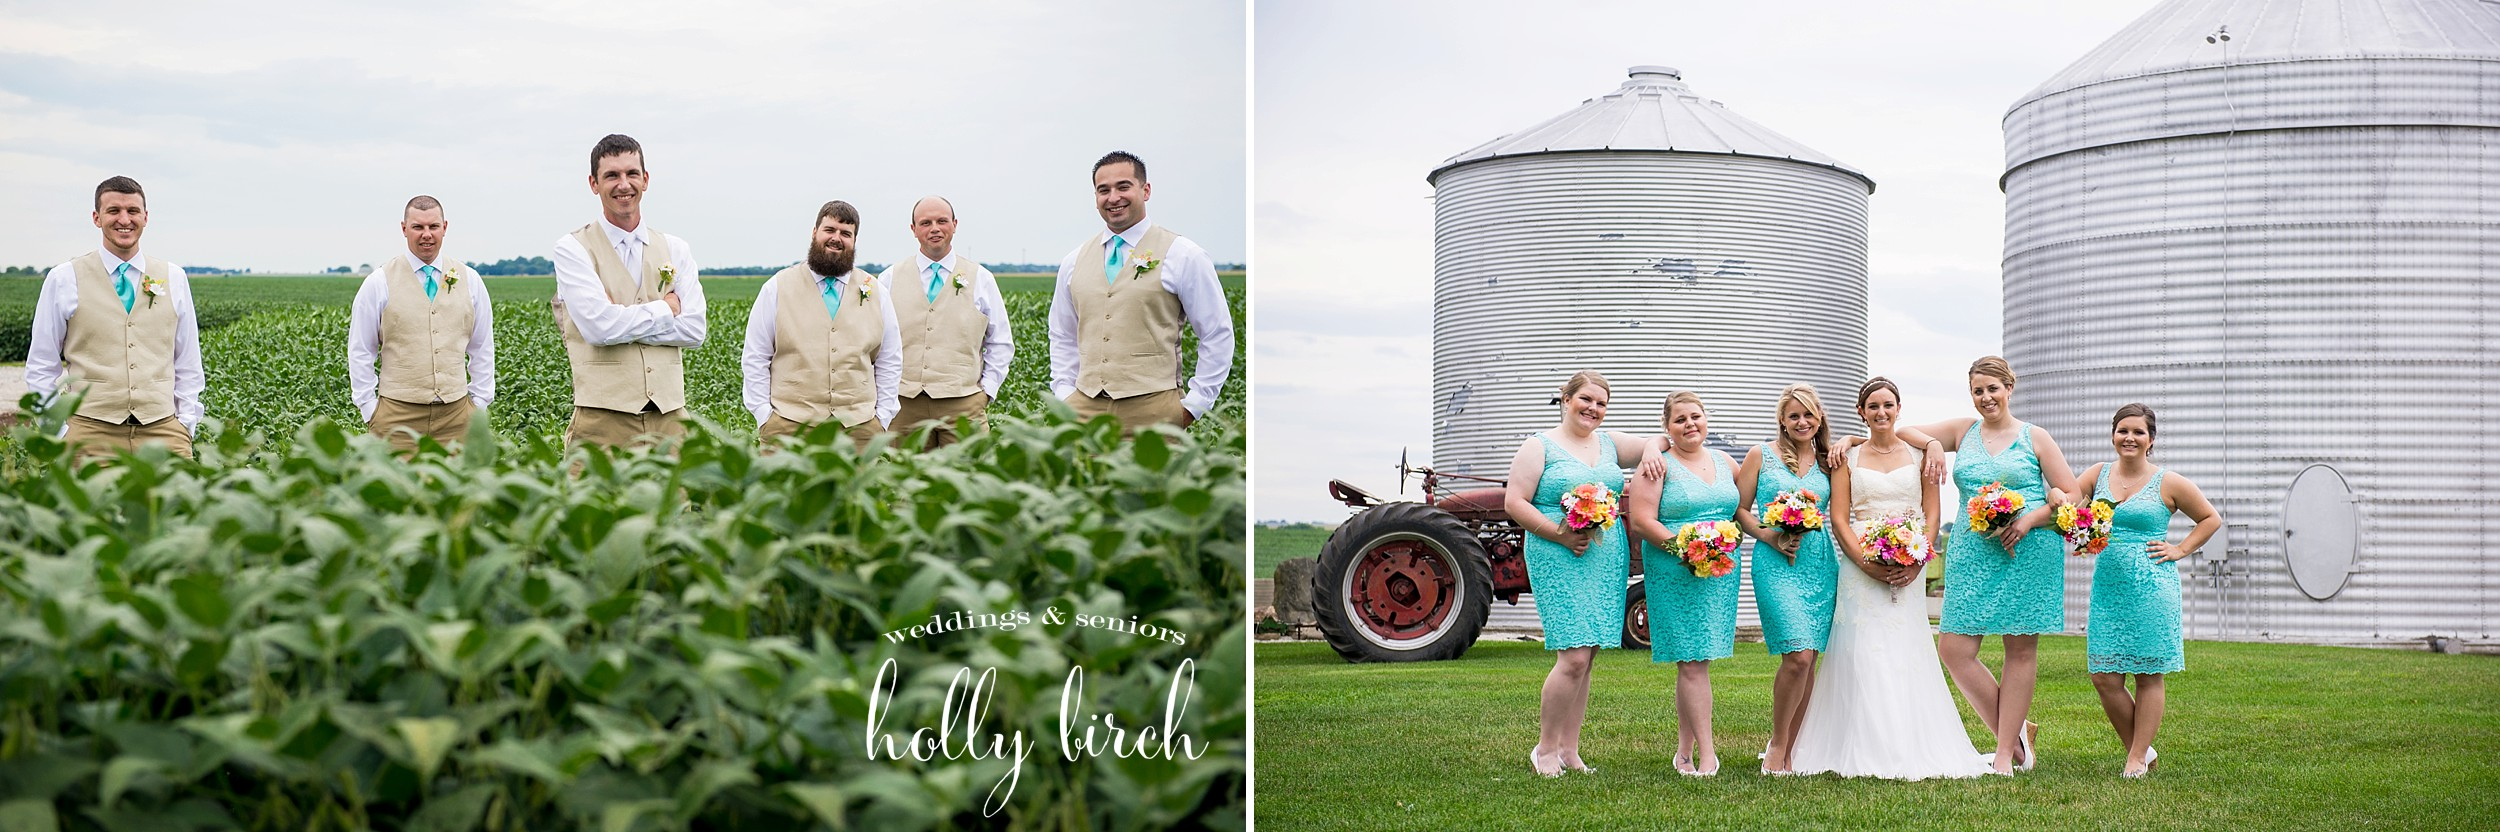 bridesmaids and groomsmen on farm